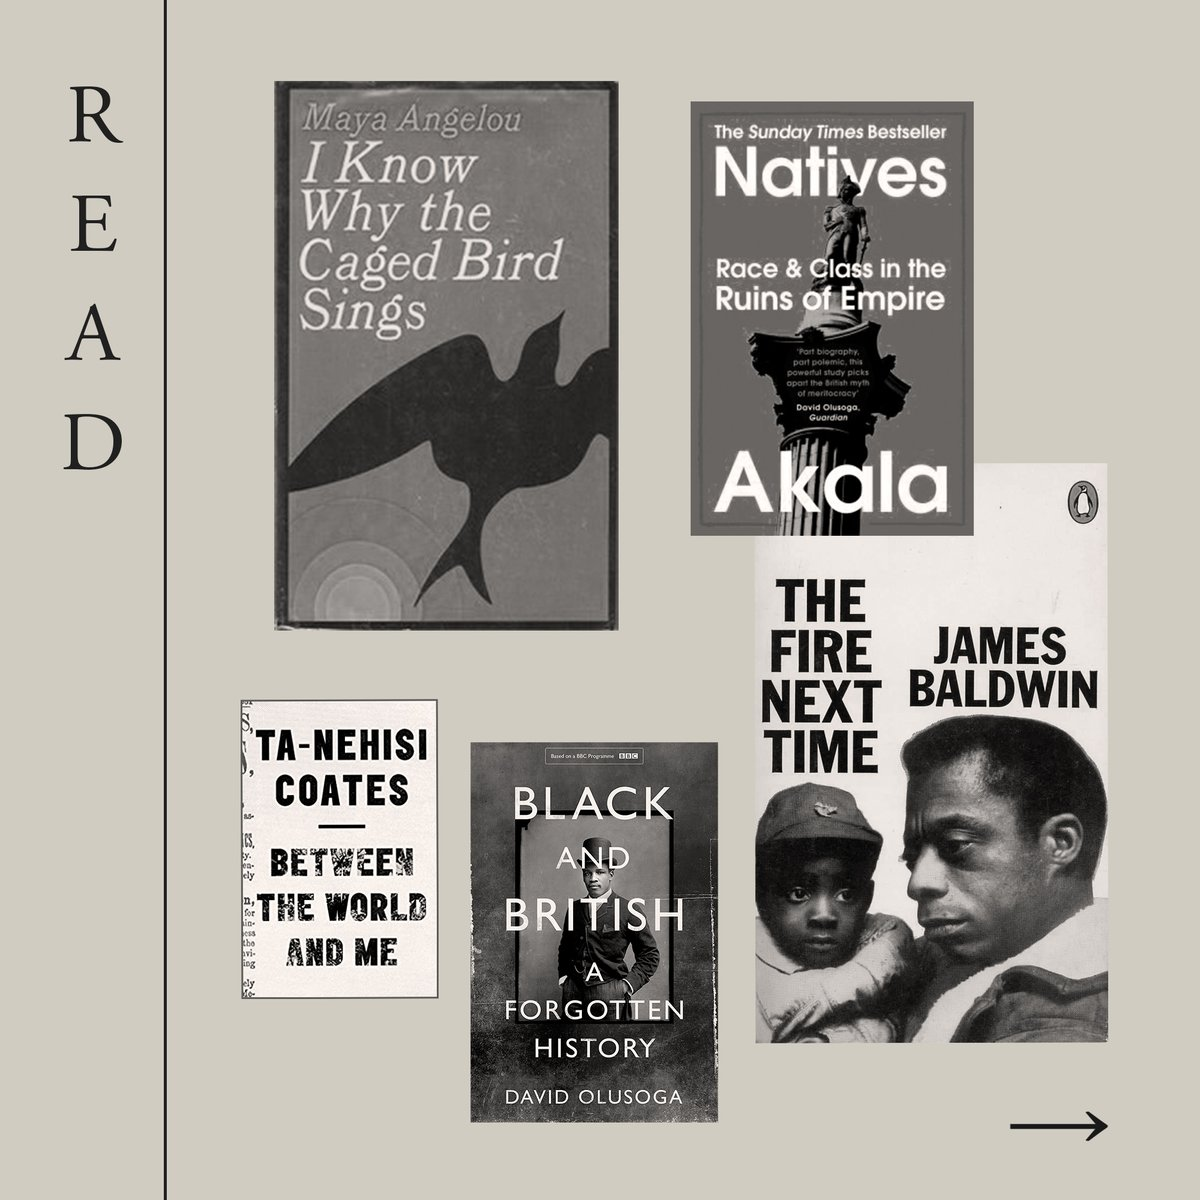 READ: A selection of books we are reading to become more educated on racism and injustice, as well as a list of black owned bookstores to support.  #BlackLivesMatter https://t.co/SD2HfFmGOX